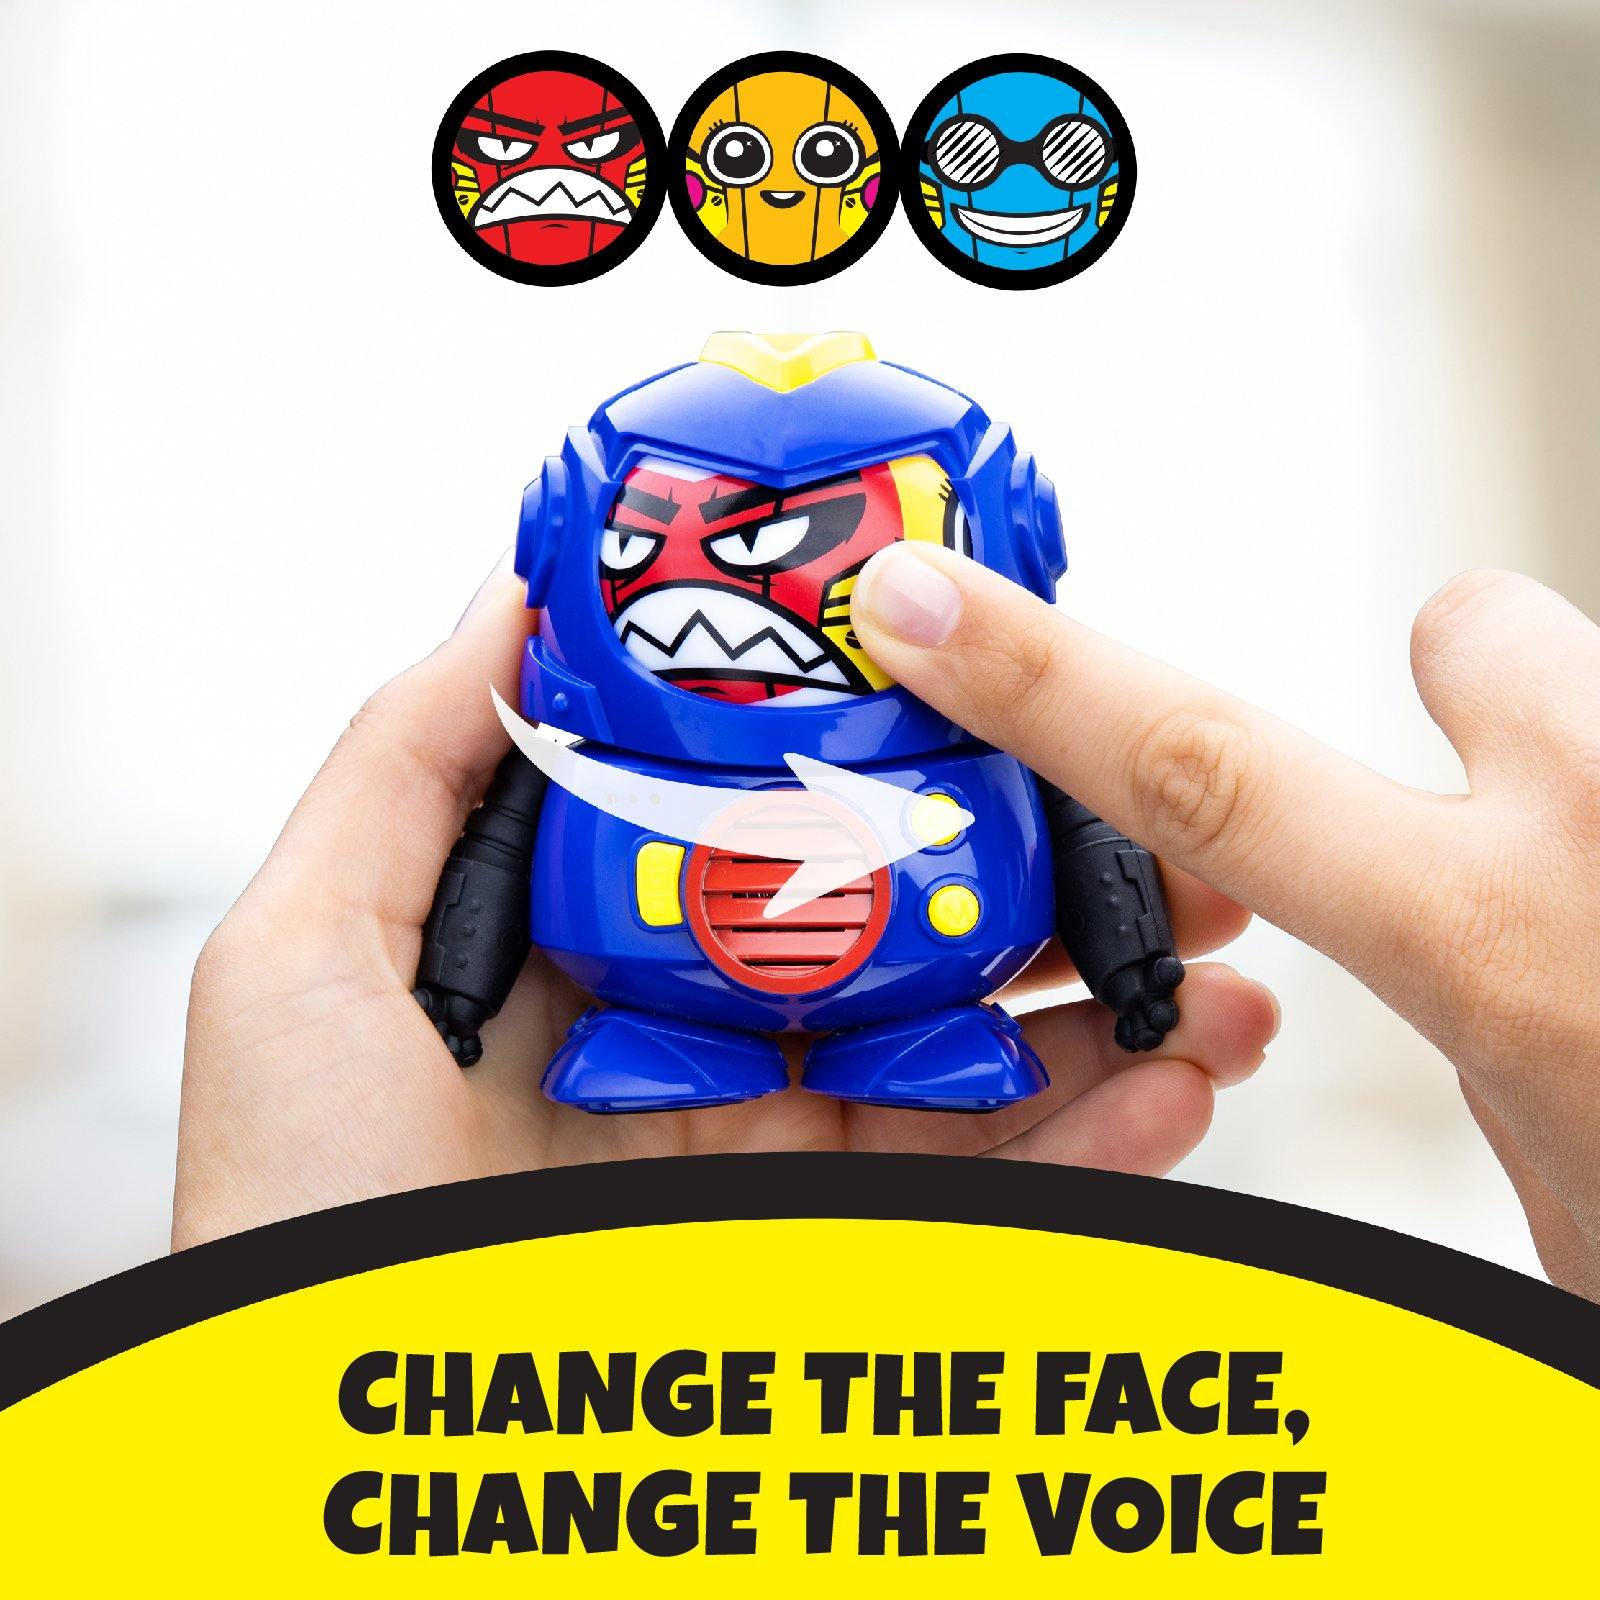 Tok Tok Mini Voice Changer Robot with 3 Robot Voices and Faces